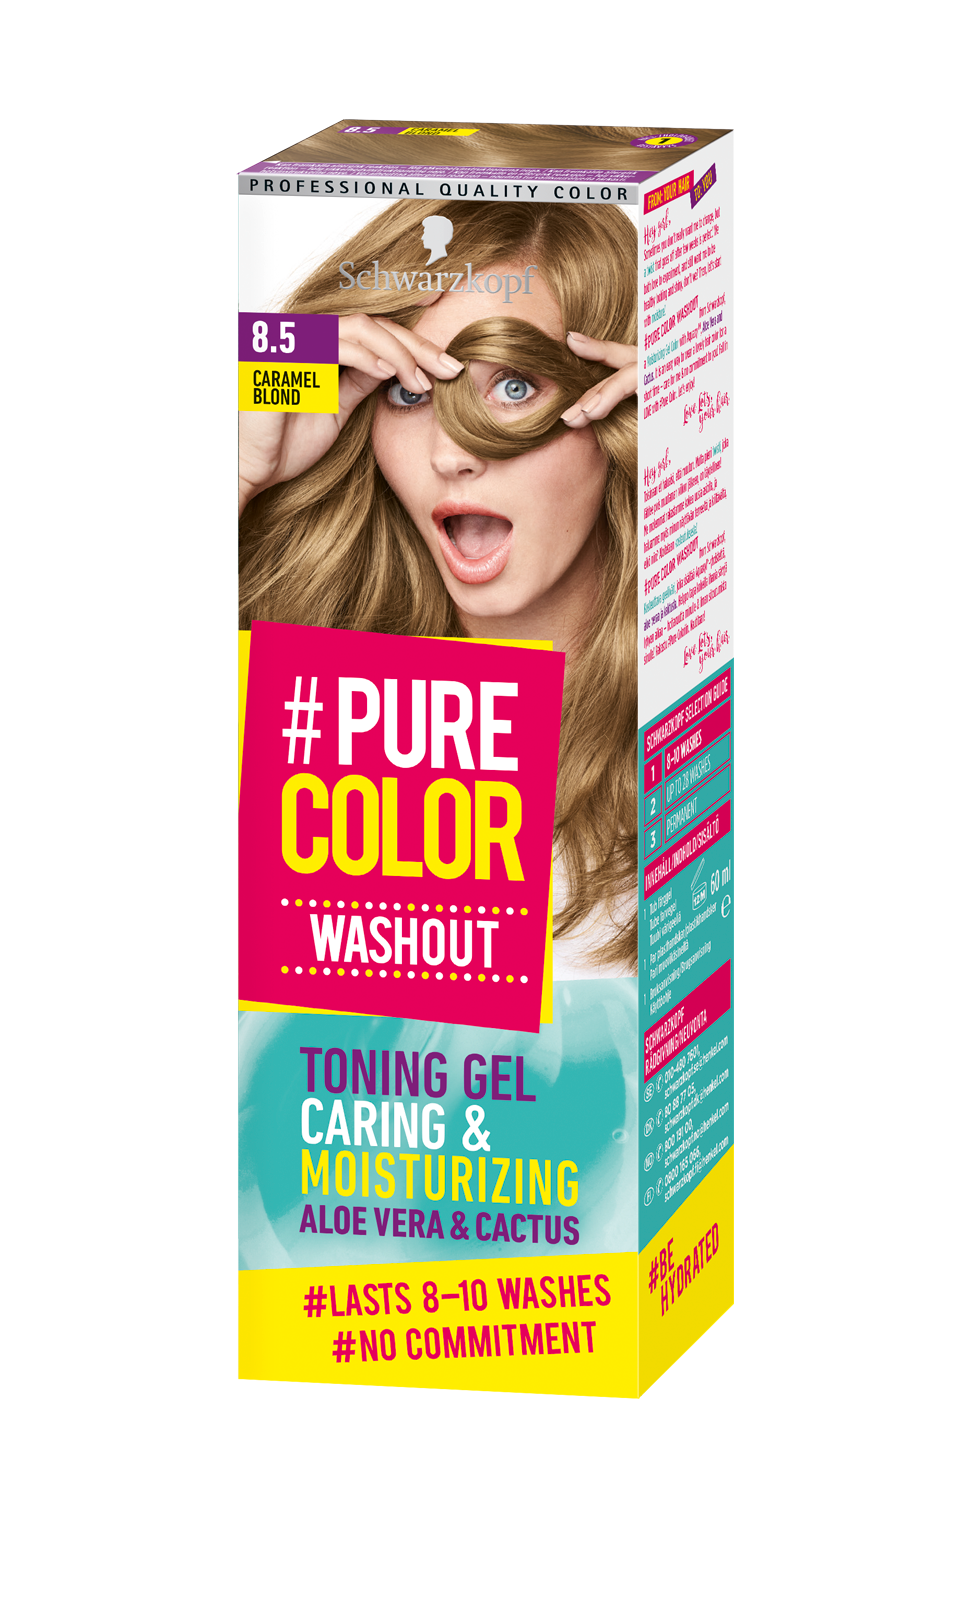 Pure-color-washout-8-5-caramel-blond